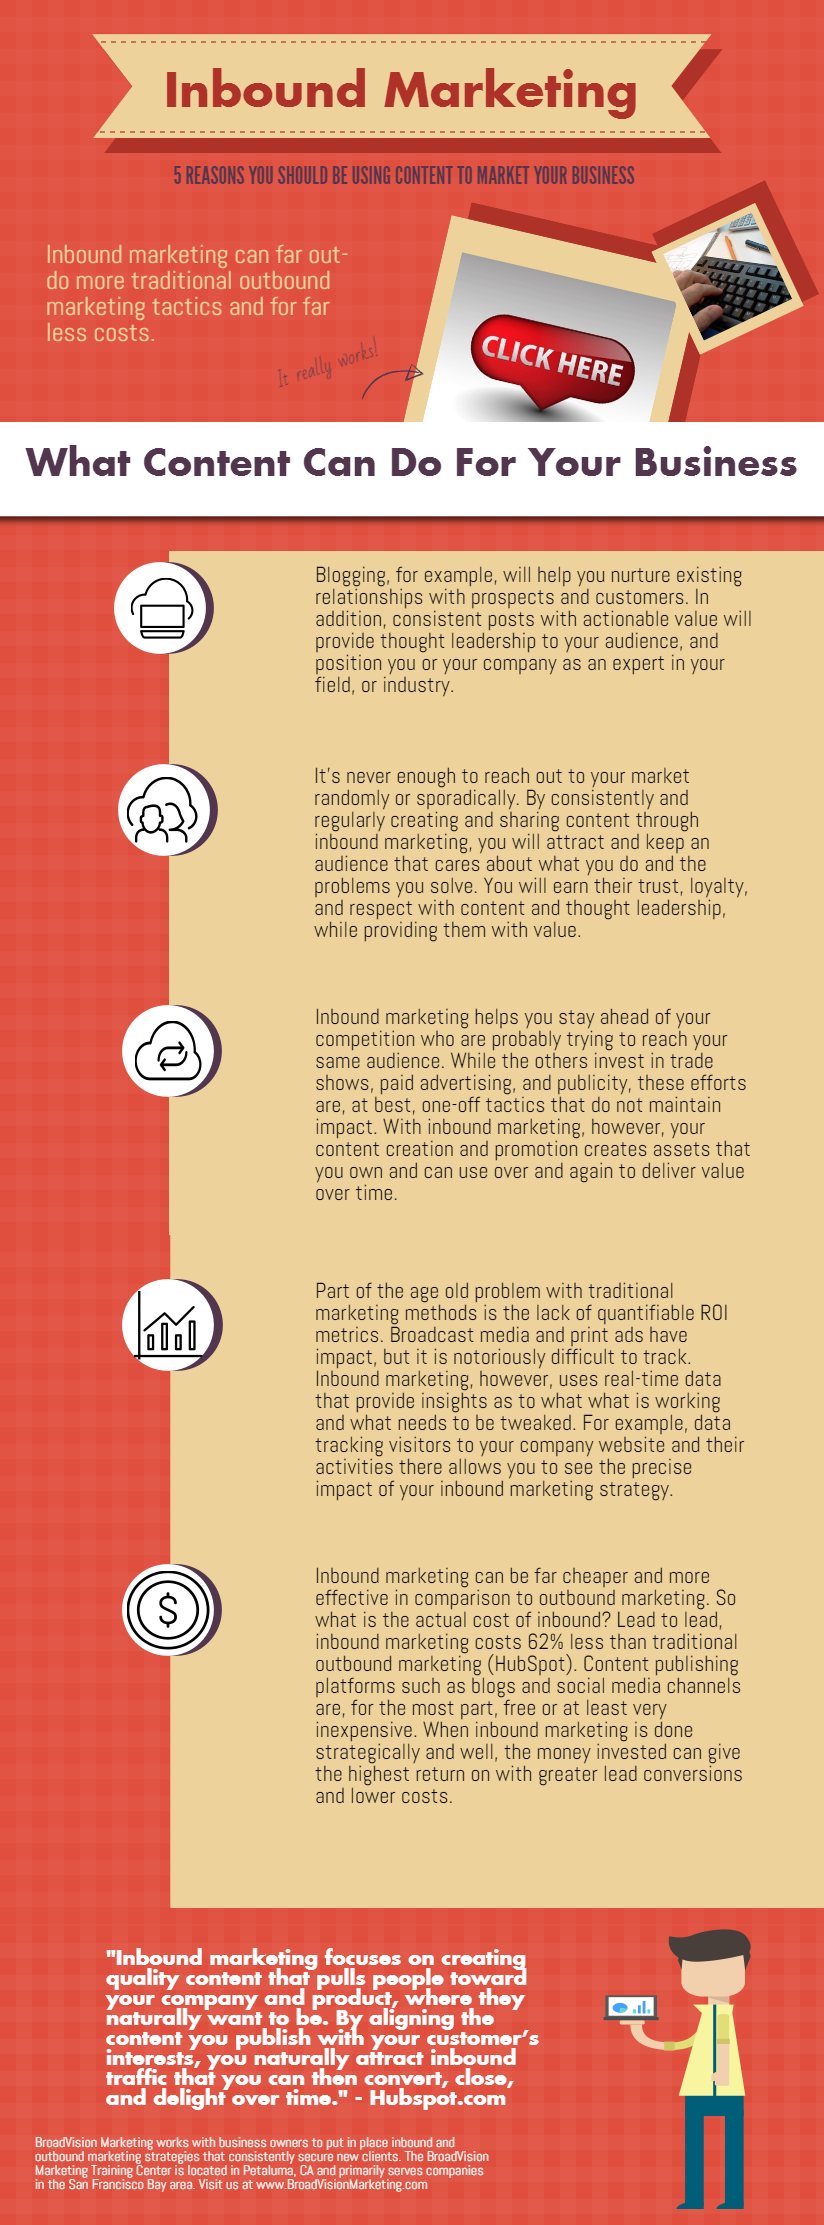 content-marketing-an-inbound-marketing-approach-for-your-business-infographic